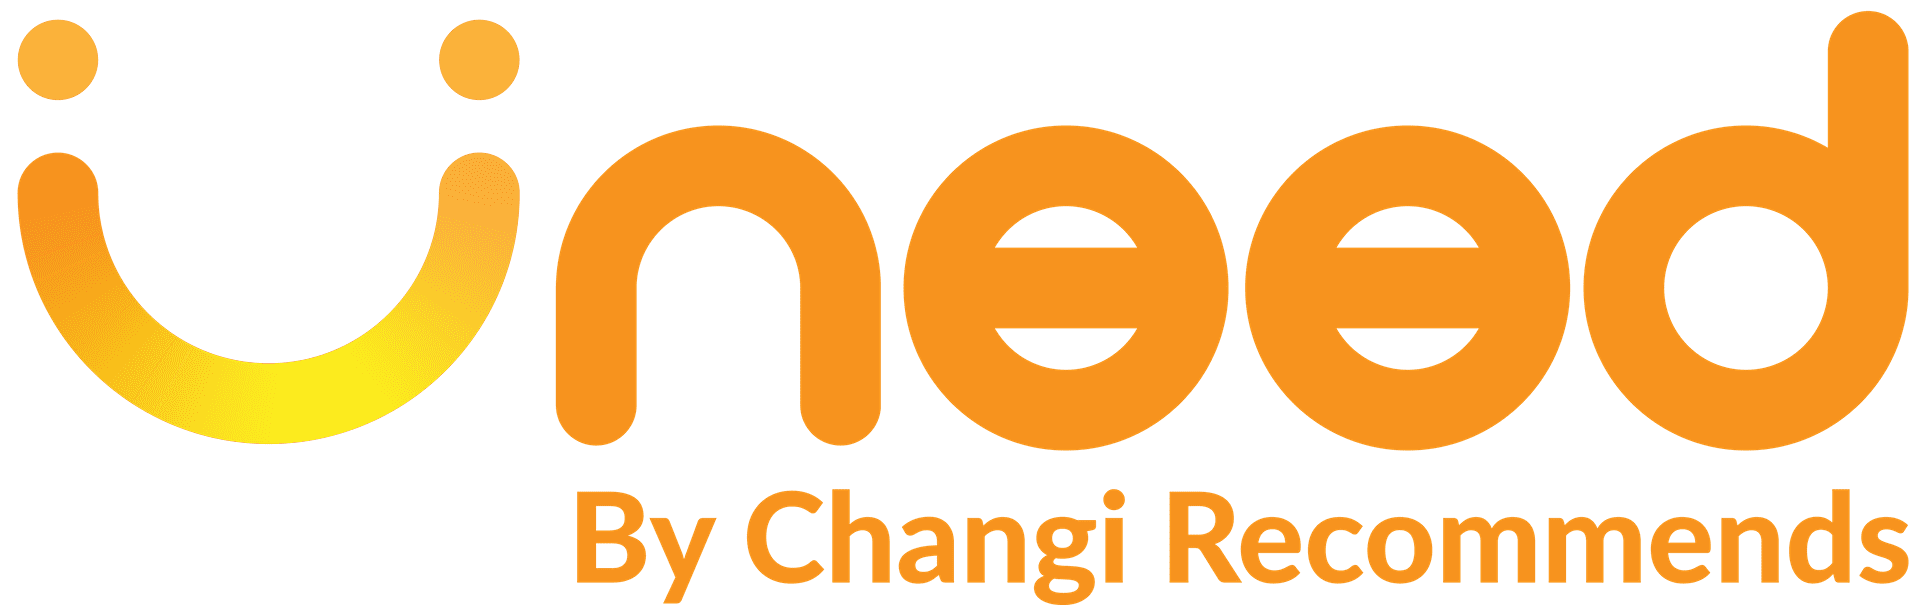 UNeed logo